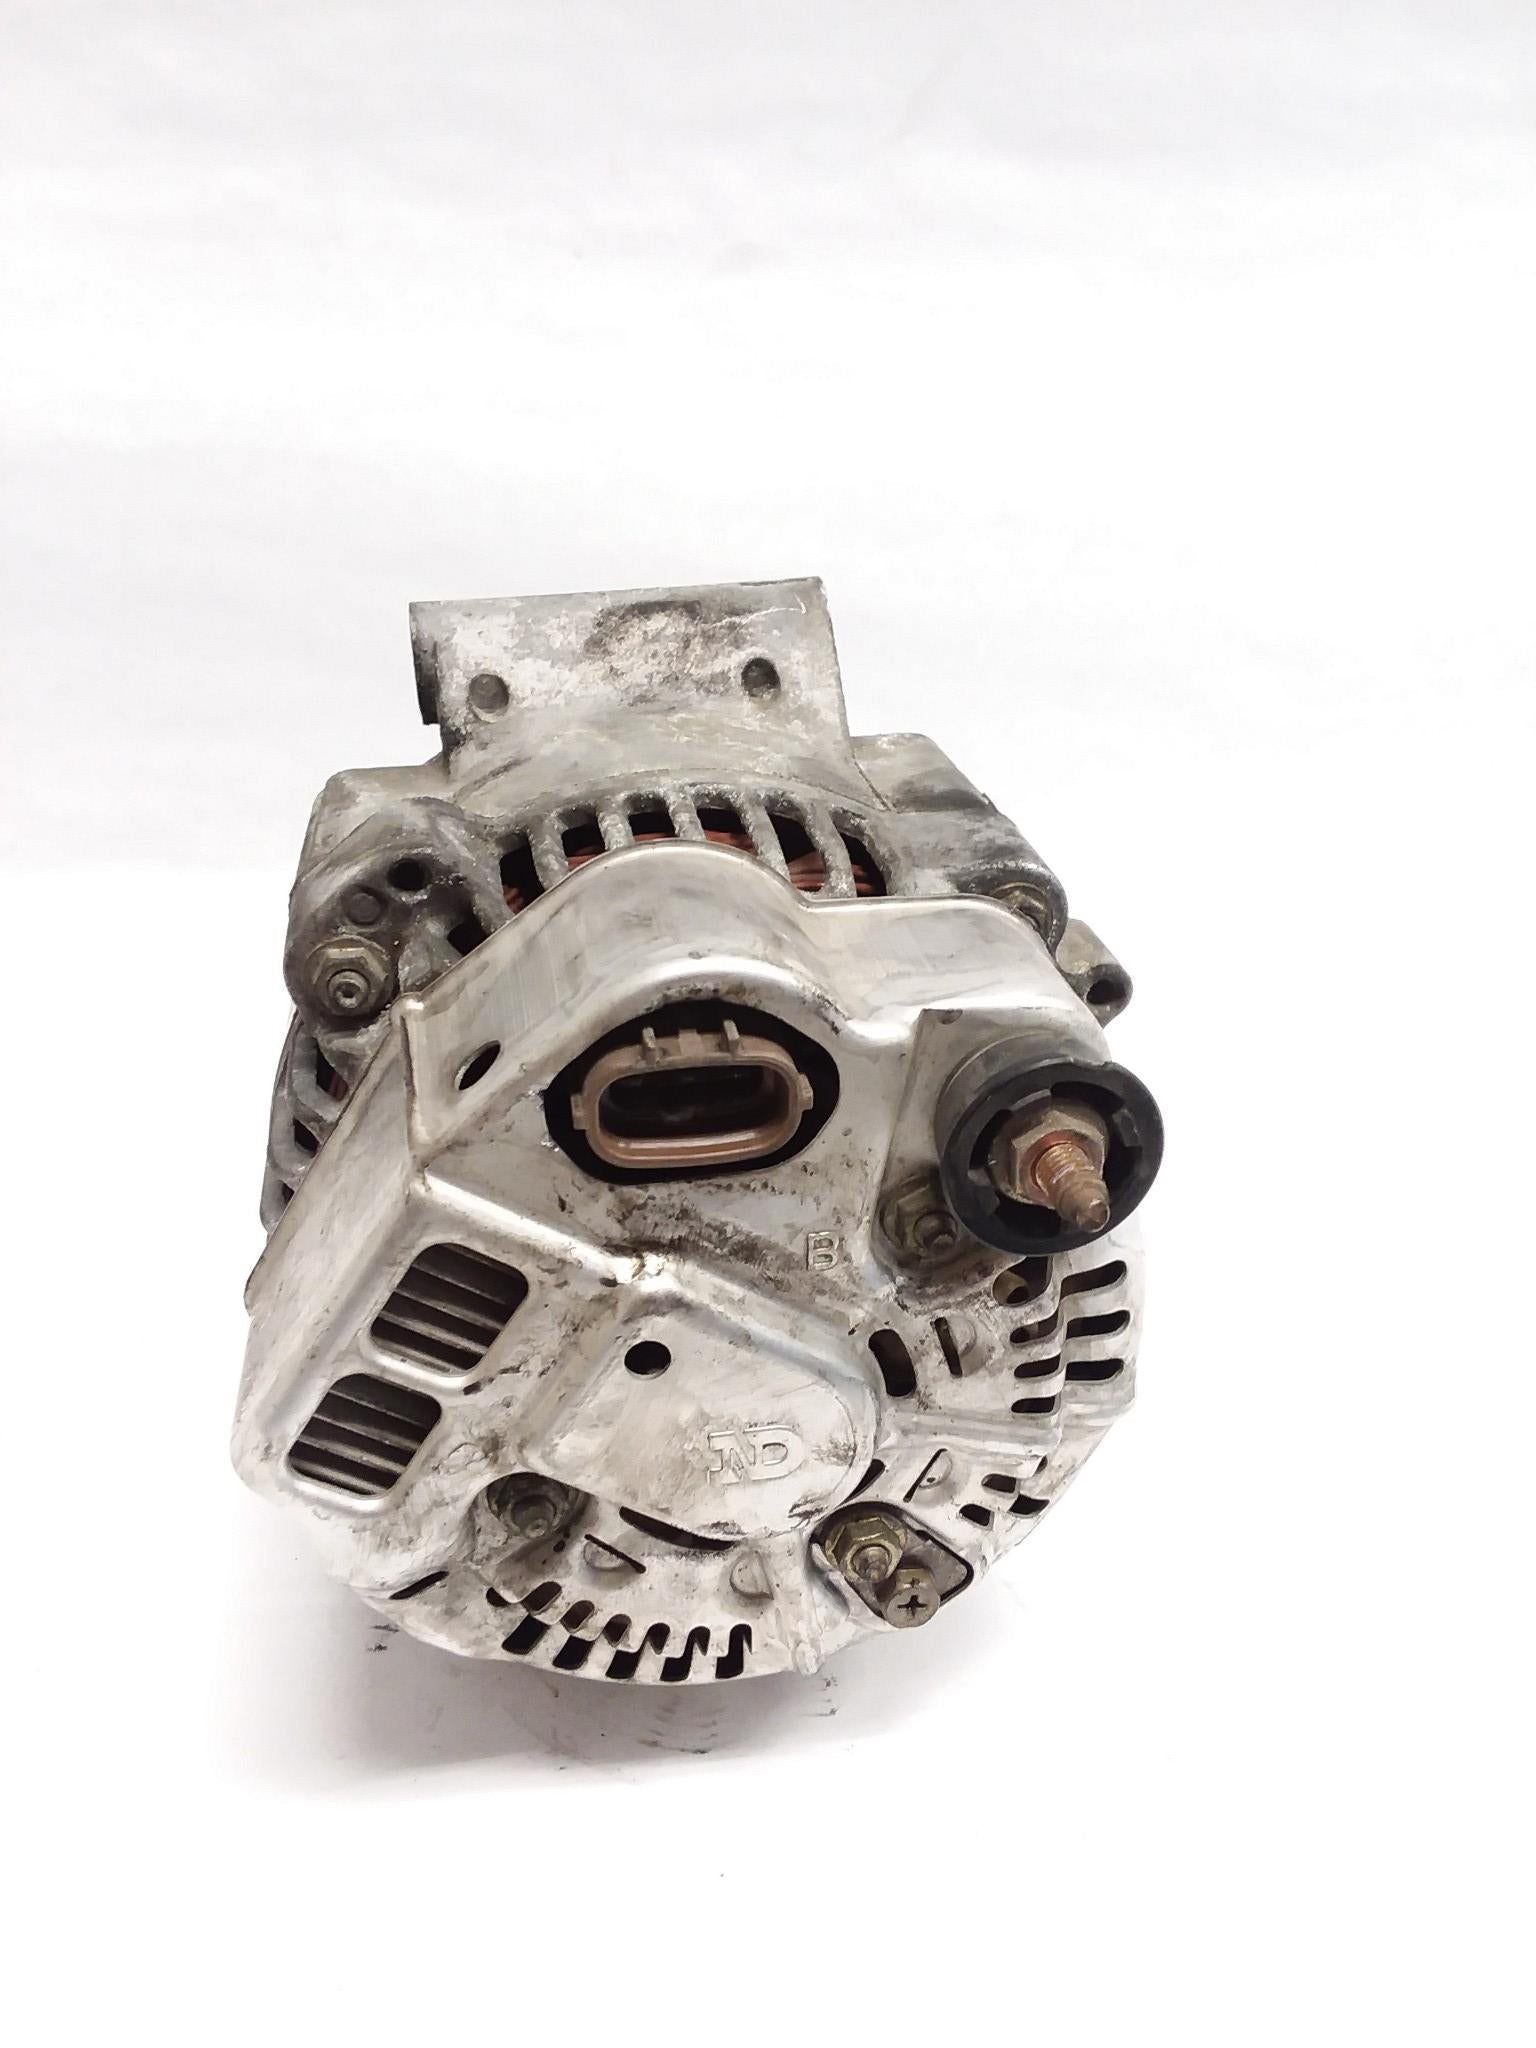 2002-2008 MINI COOPER S R53 R52 ALTERNATOR UNIT GENERATOR 105A OEM 7515030